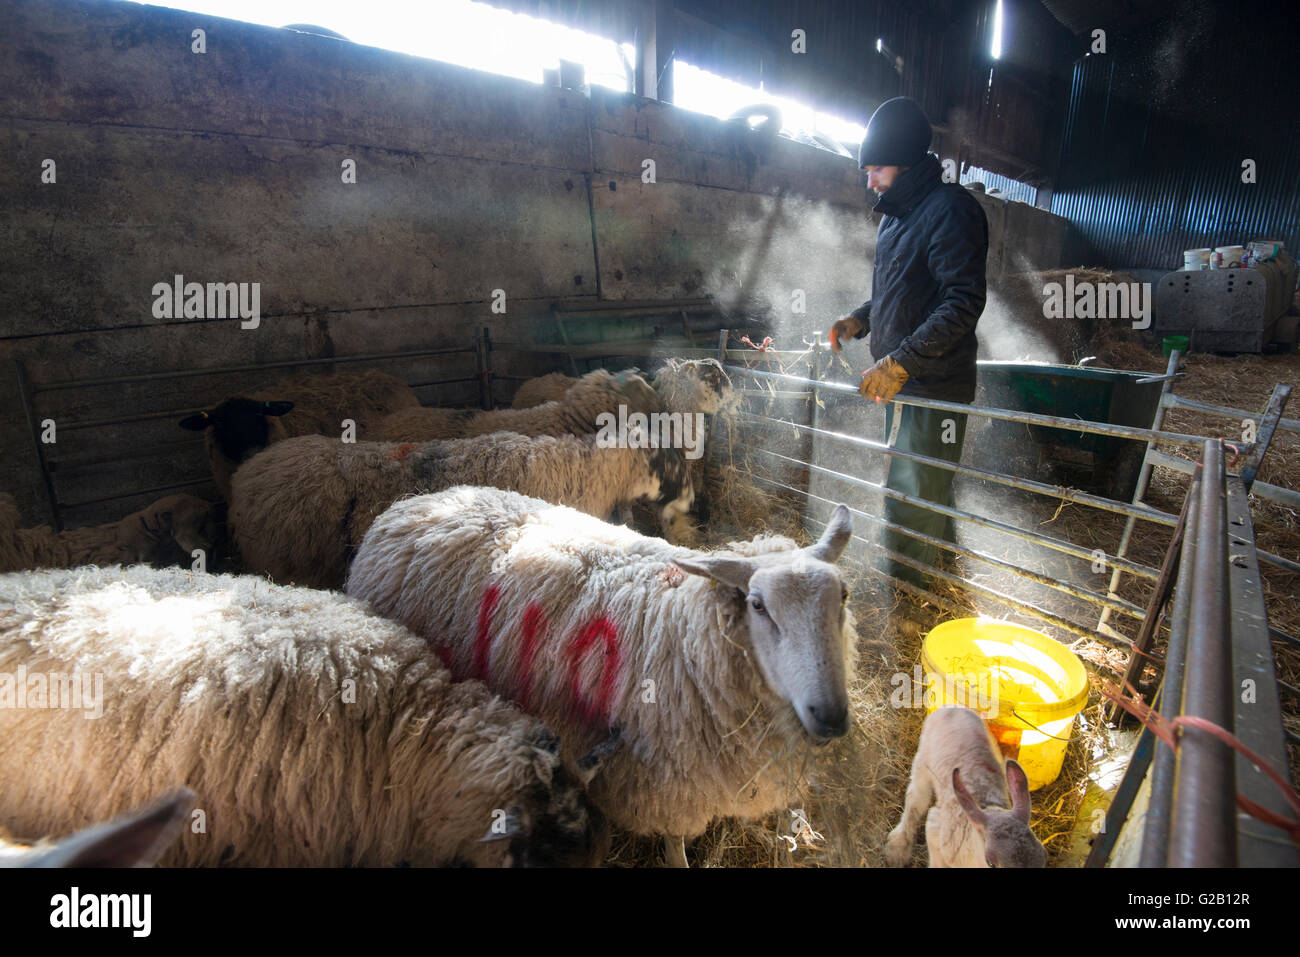 Sheep and their lambs being fed by a farmer, inside a barn on a farm in Derbyshire England UK - Stock Image